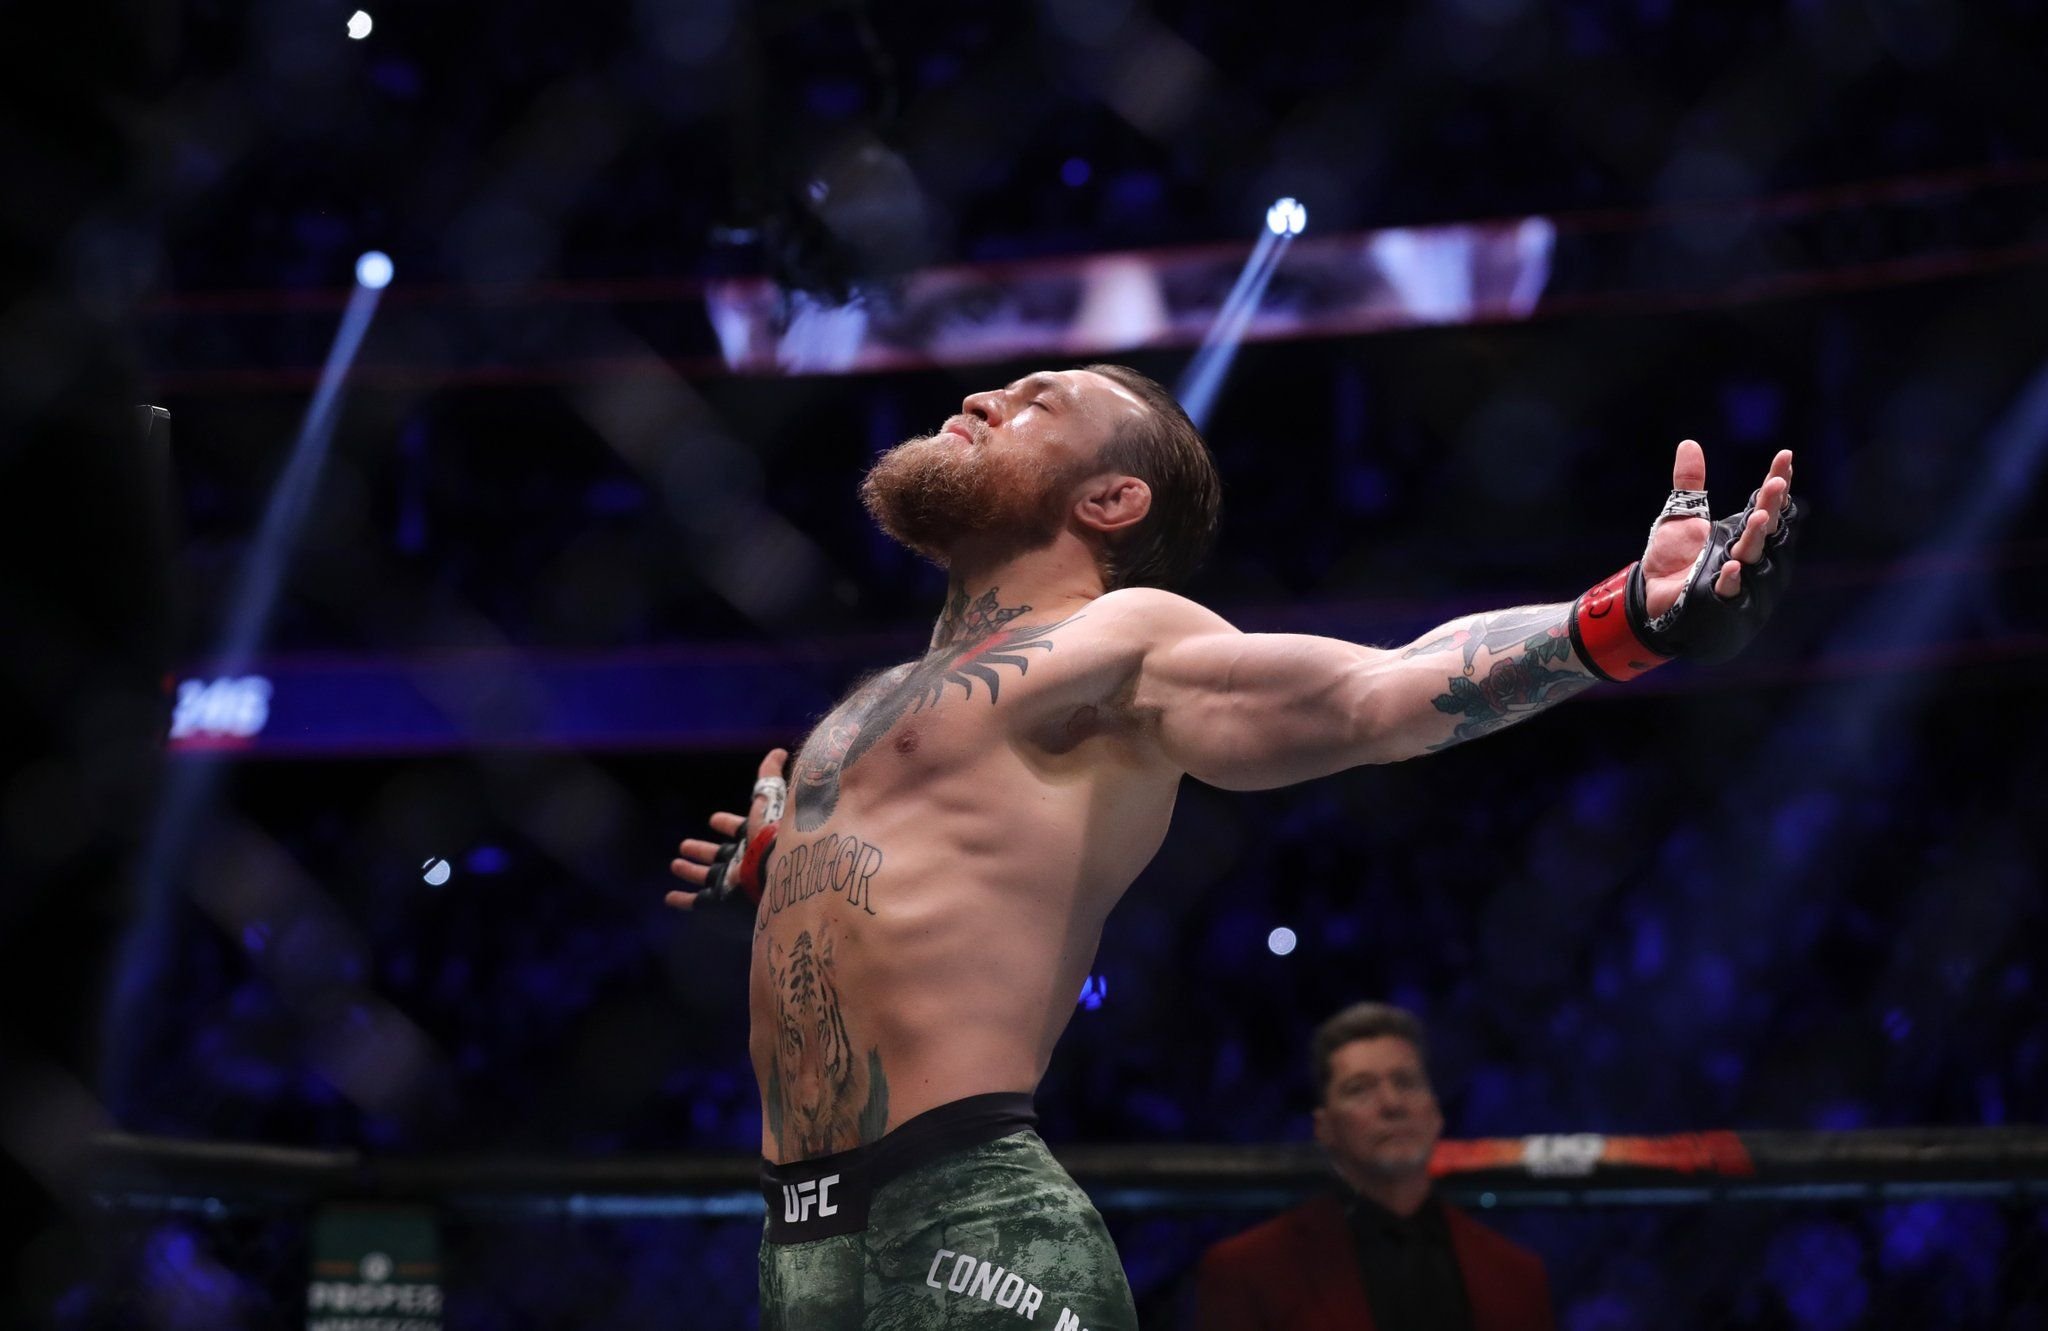 Pin By Inthaknow On Conor Mcgregor In 2020 Donald Cerrone Connor Mcgregor Conor Mcgregor